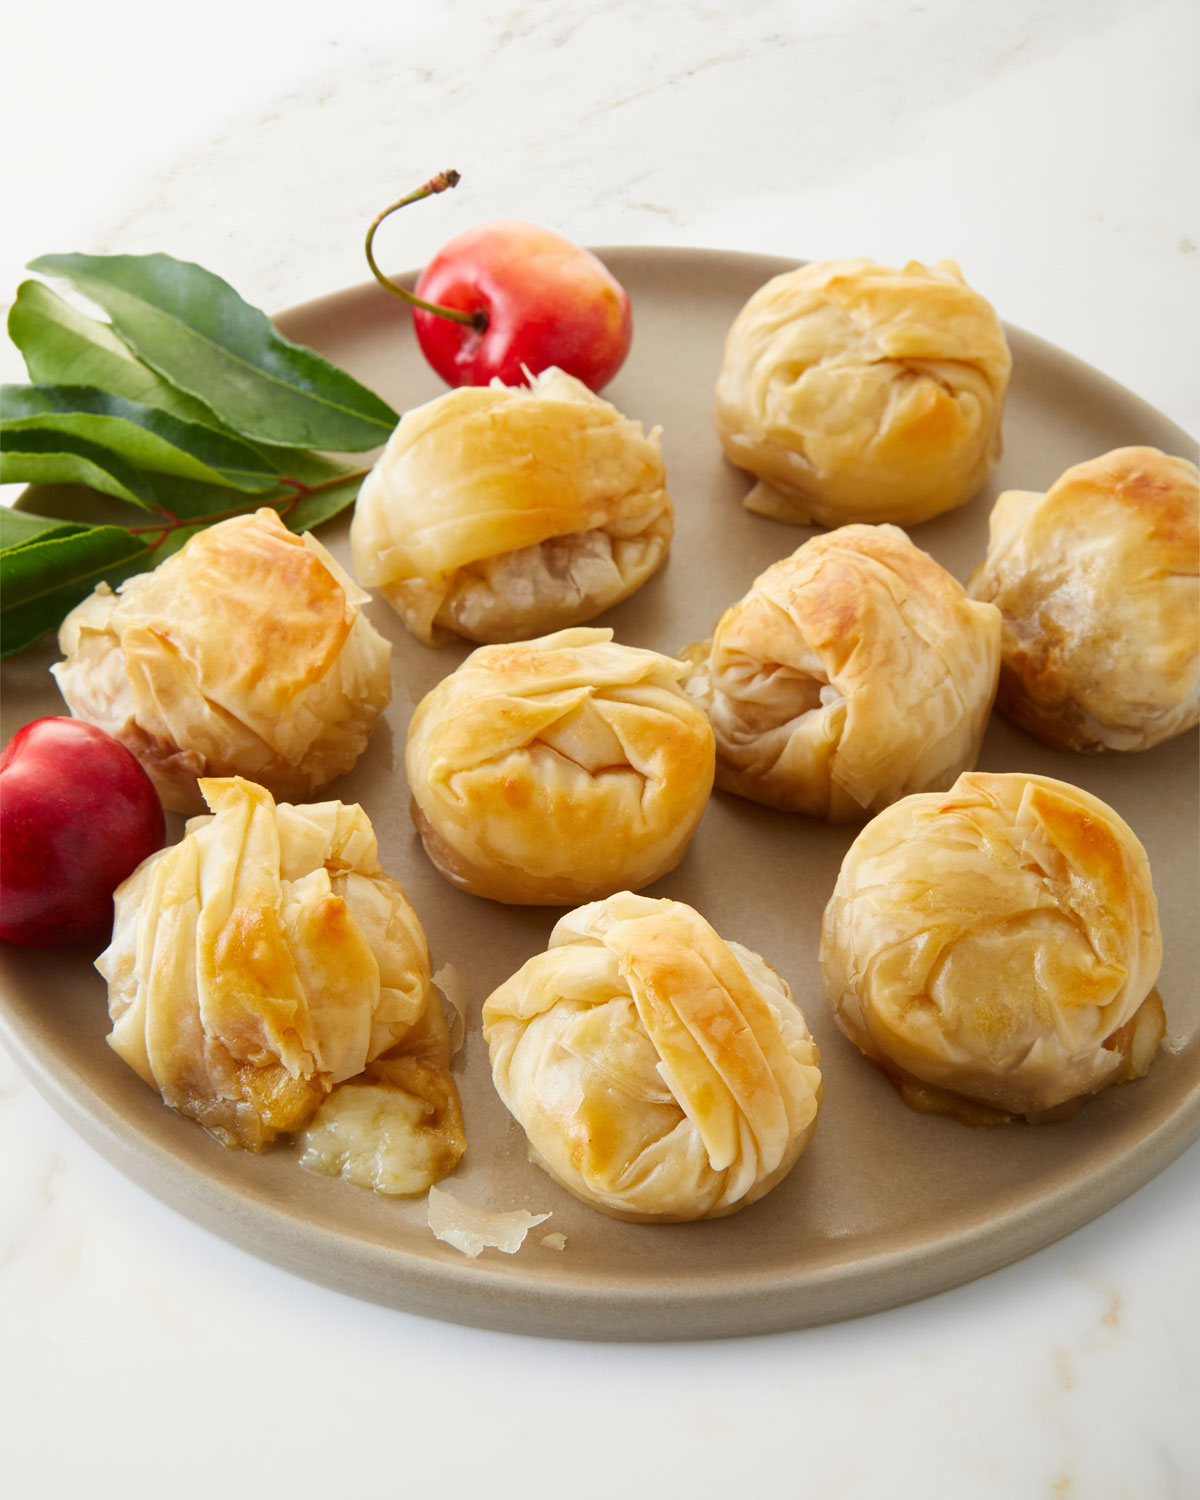 Baked Brie Bites with Apple Chutney, For 13 People